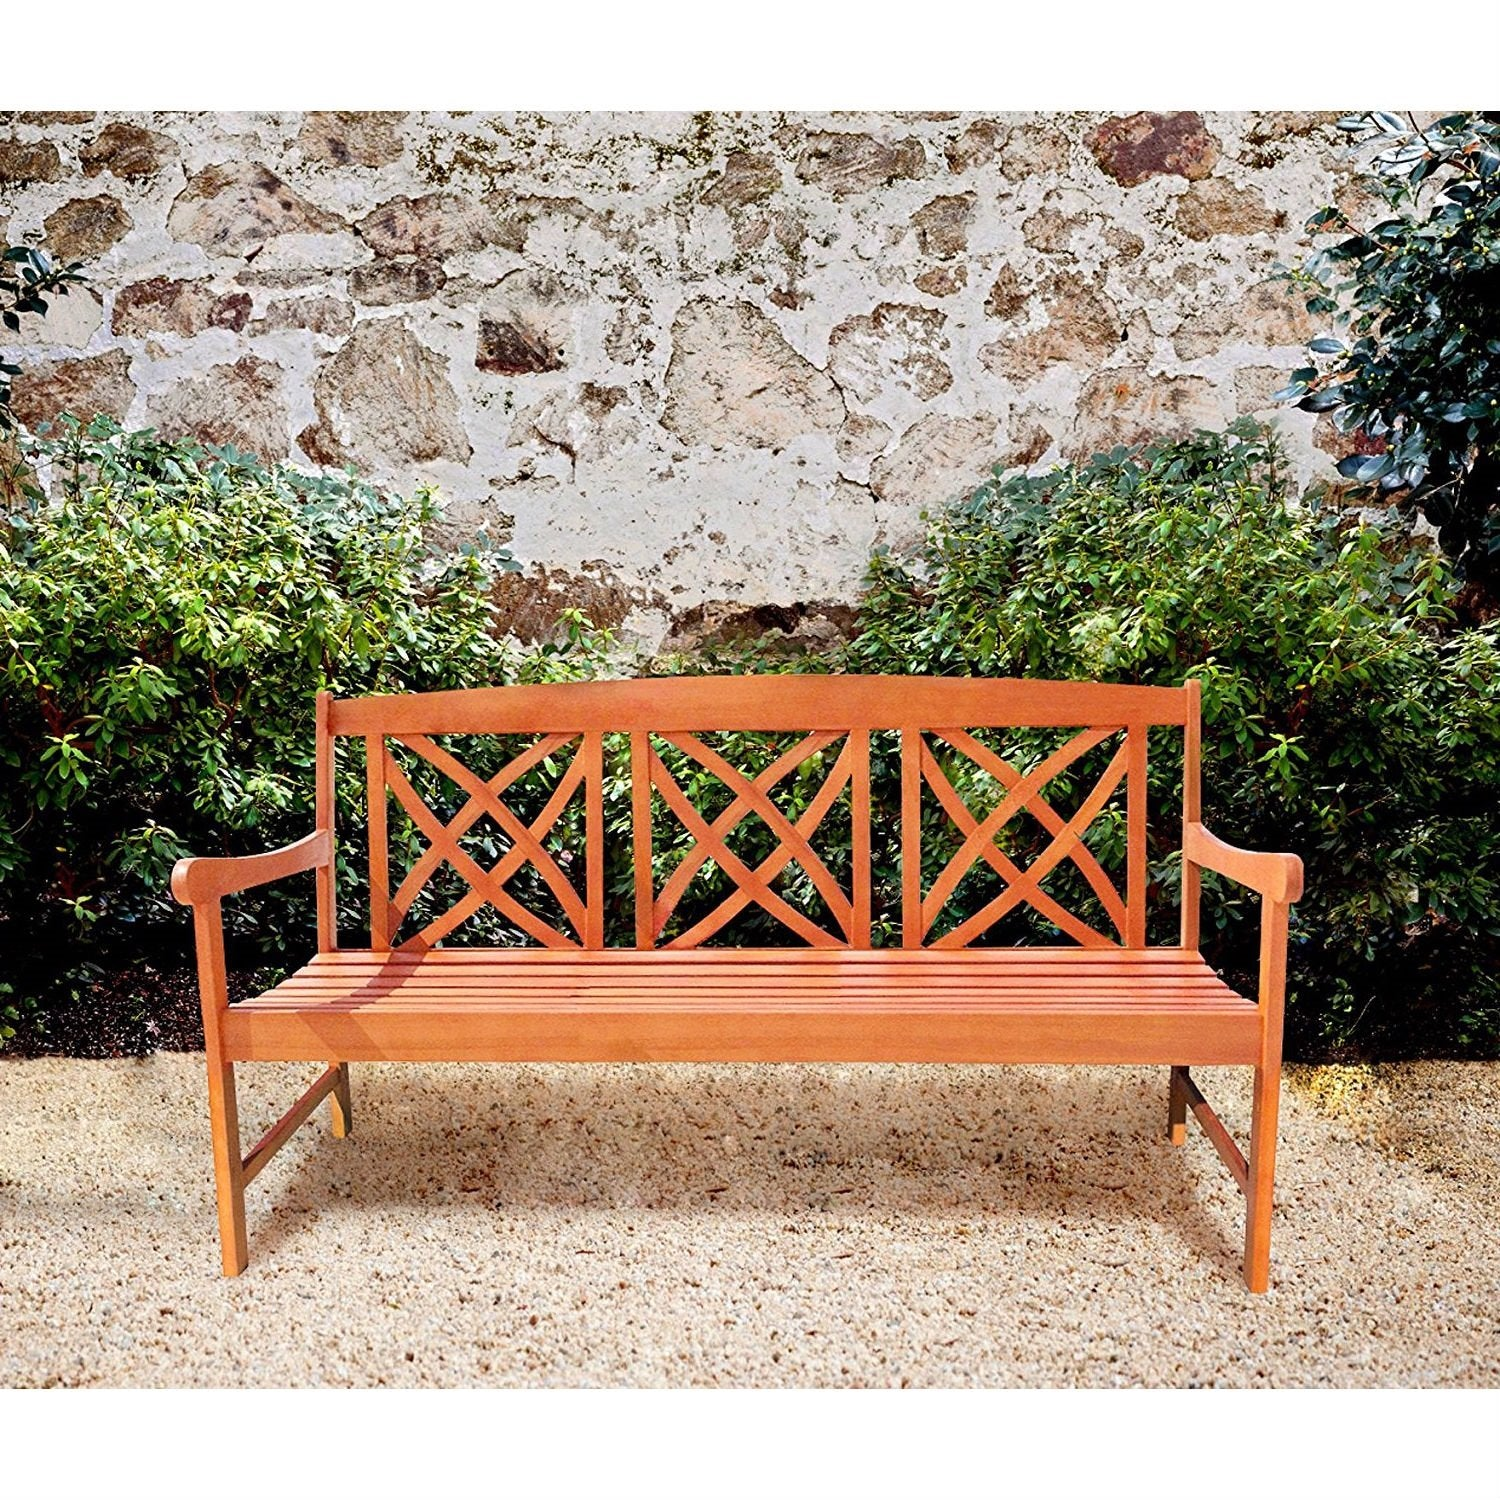 Swell 3 Ft Outdoor Backless Garden Bench In Dark Brown Wood Finish Ibusinesslaw Wood Chair Design Ideas Ibusinesslaworg